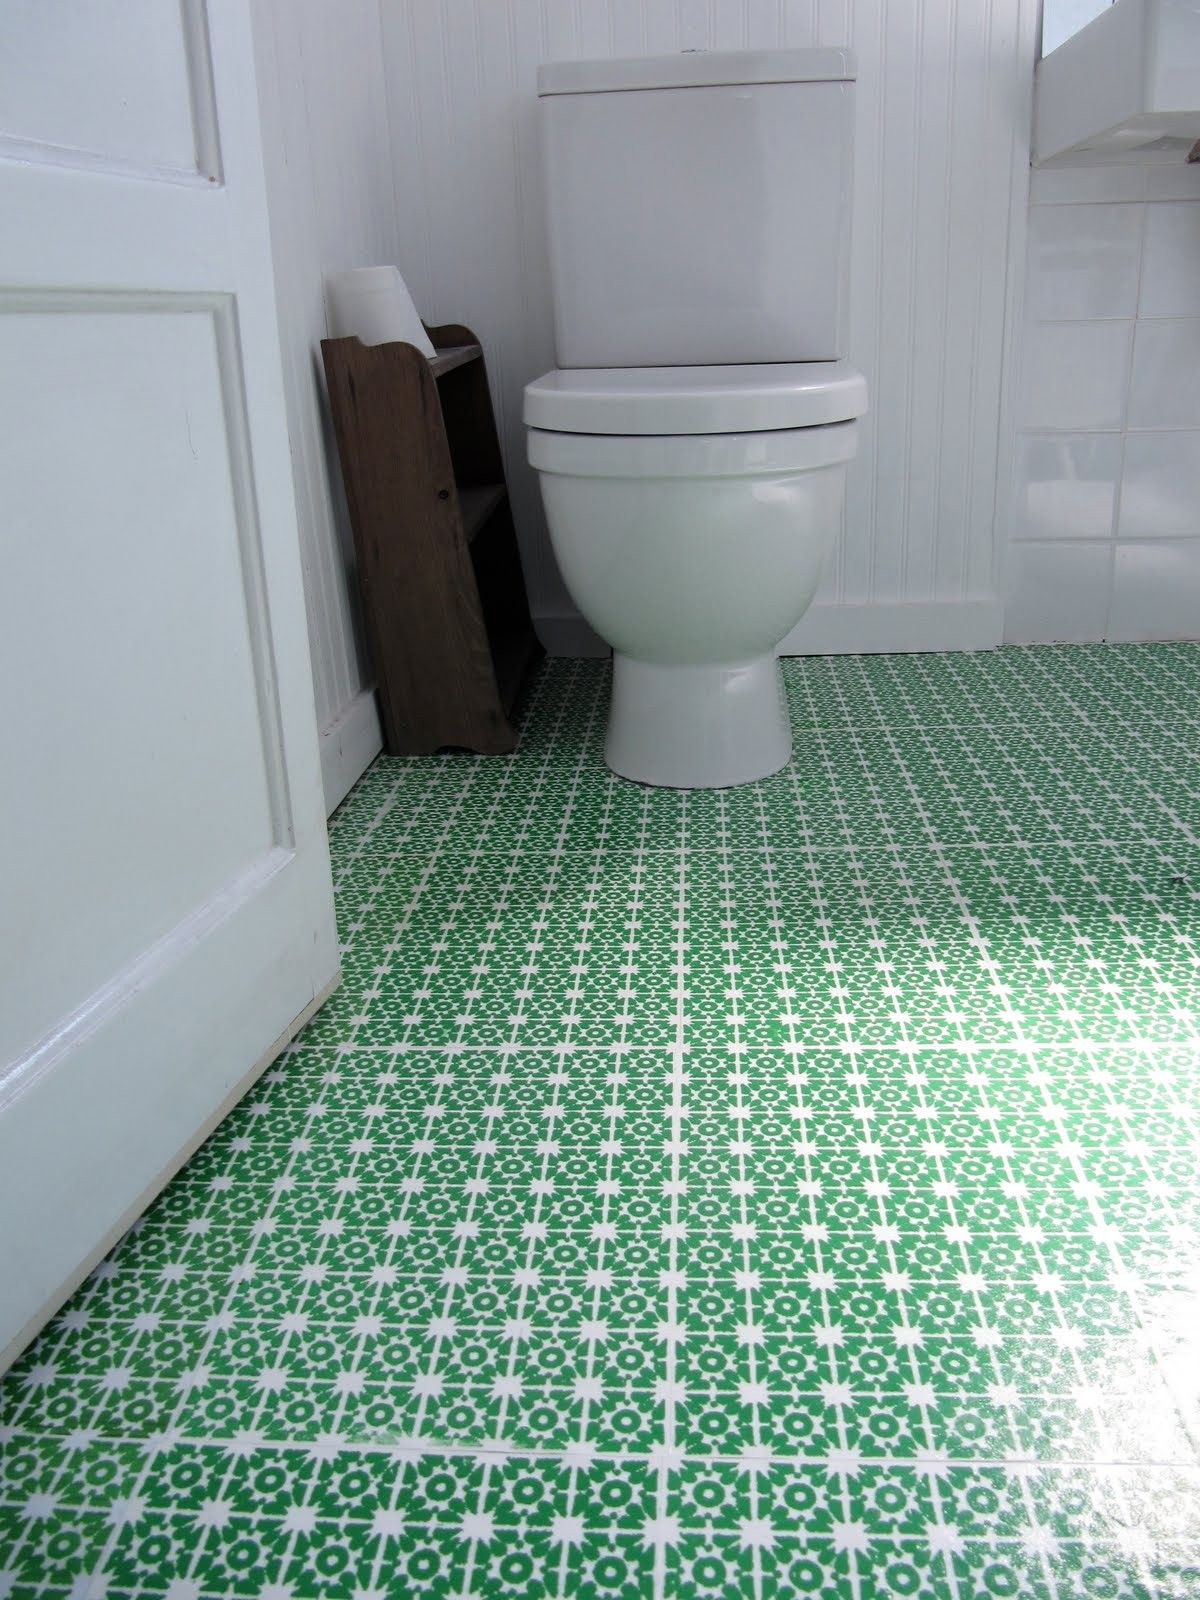 beautiful patterned green bathroom vinyl flooring for white room interior decorations - Bathroom Vinyl Flooring